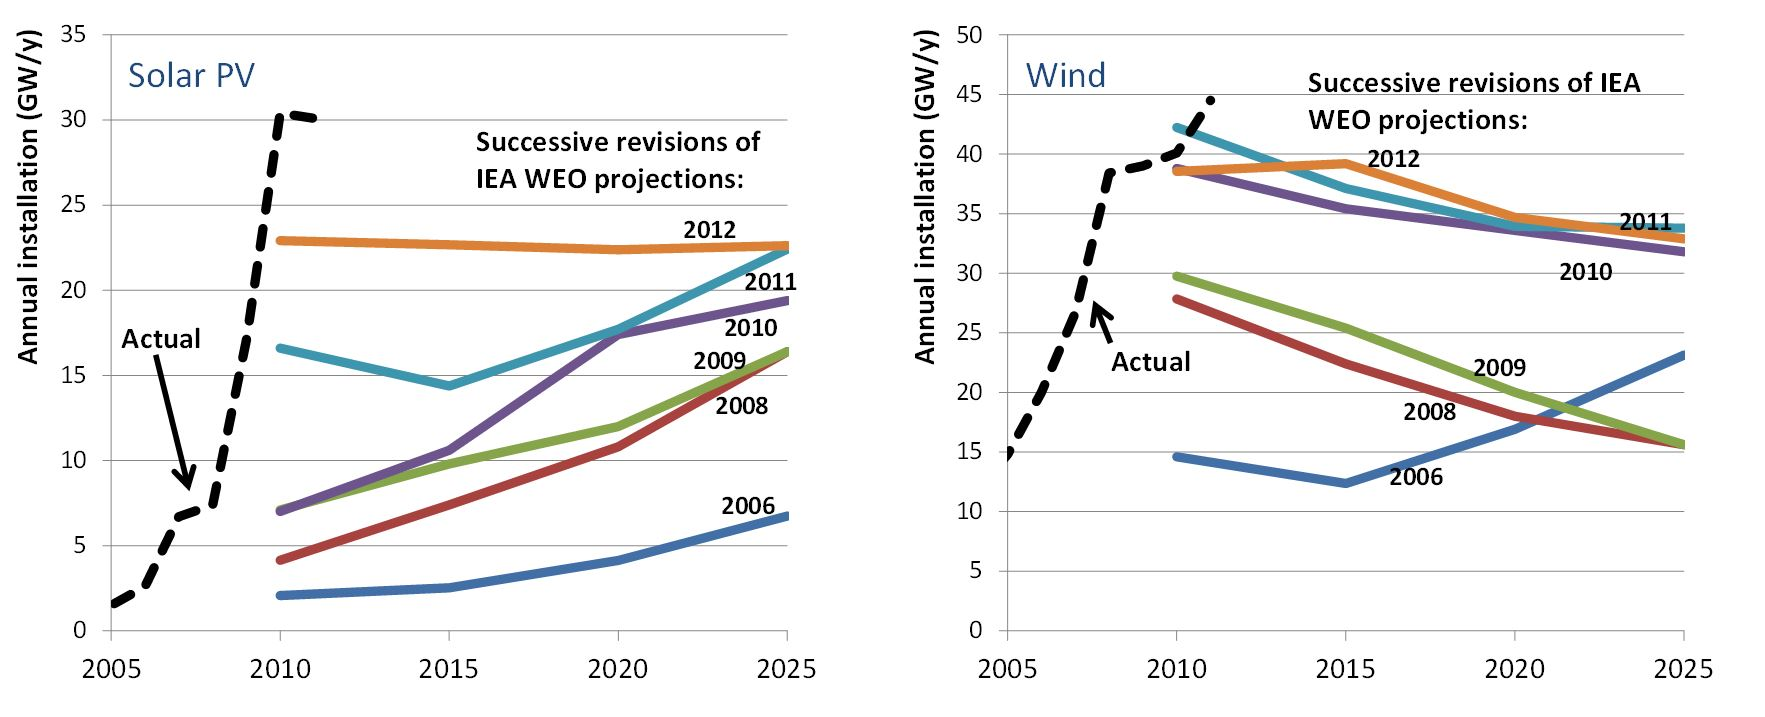 renewable energy and climate change Life cycle assessment harmonization in this project ipcc special report on renewable energy sources and climate change mitigation: renewable energy in the context of sustainable development (2011.